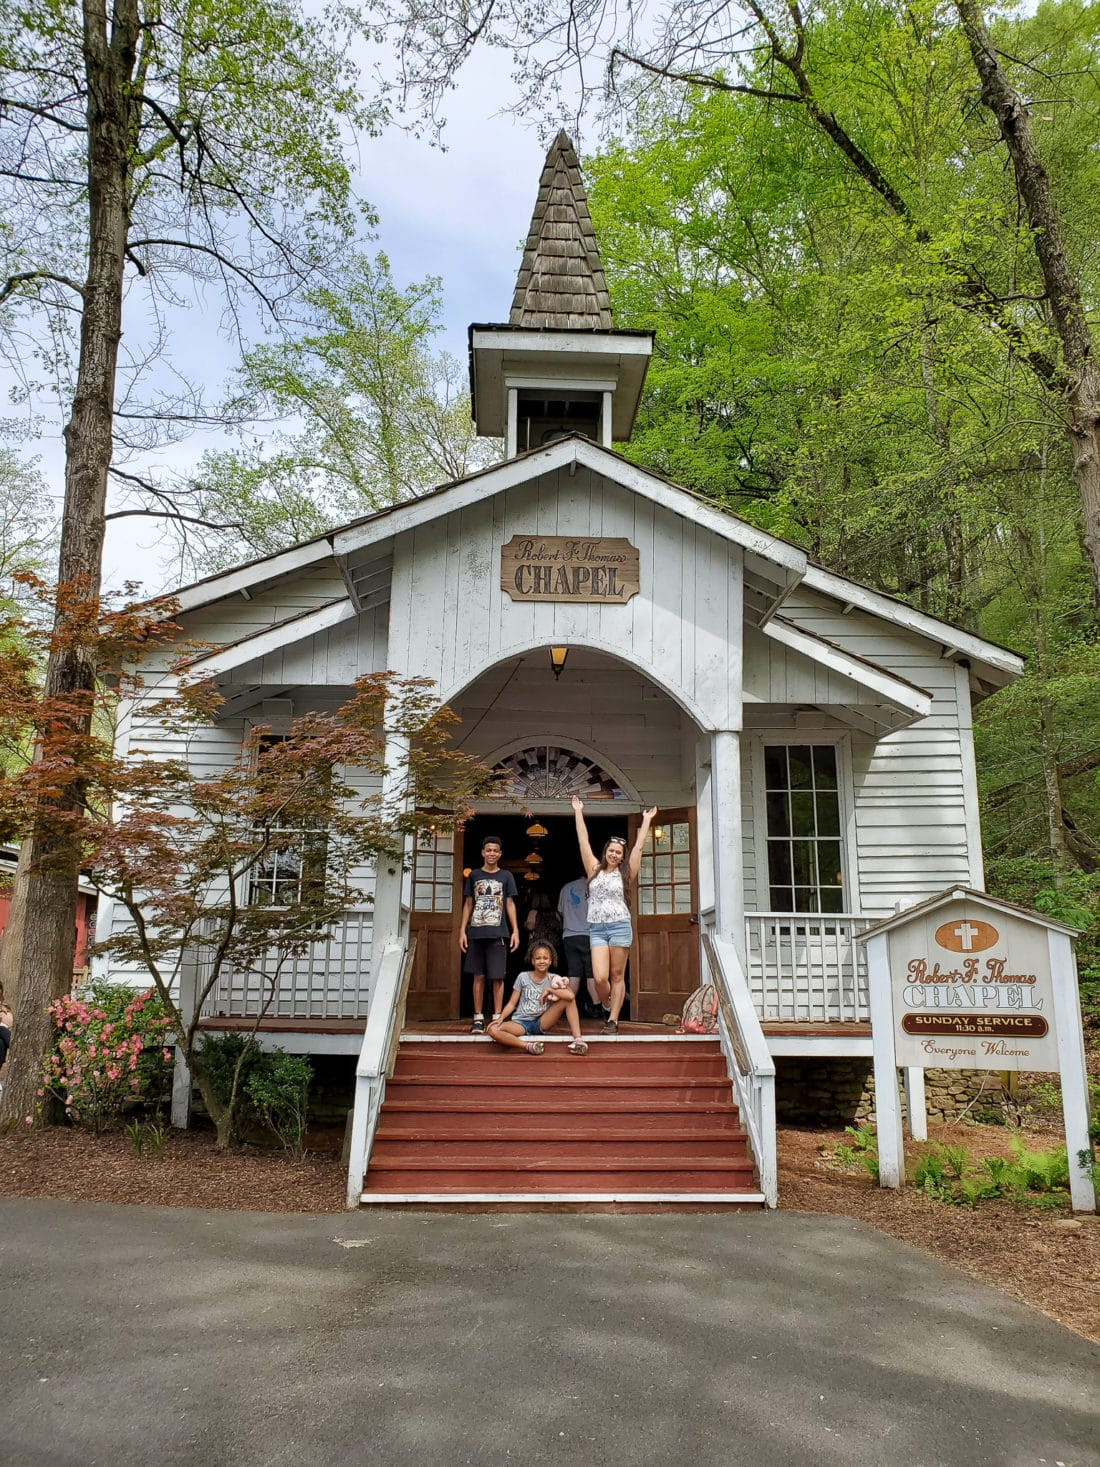 Dollywood Church. My family spent the day playing and eating at the Dollywood theme park, and we are happy to report we had a blast! Read all about our trip and learn why Dollwood is a must visit destination while you are in Pigeon Forge, TN.